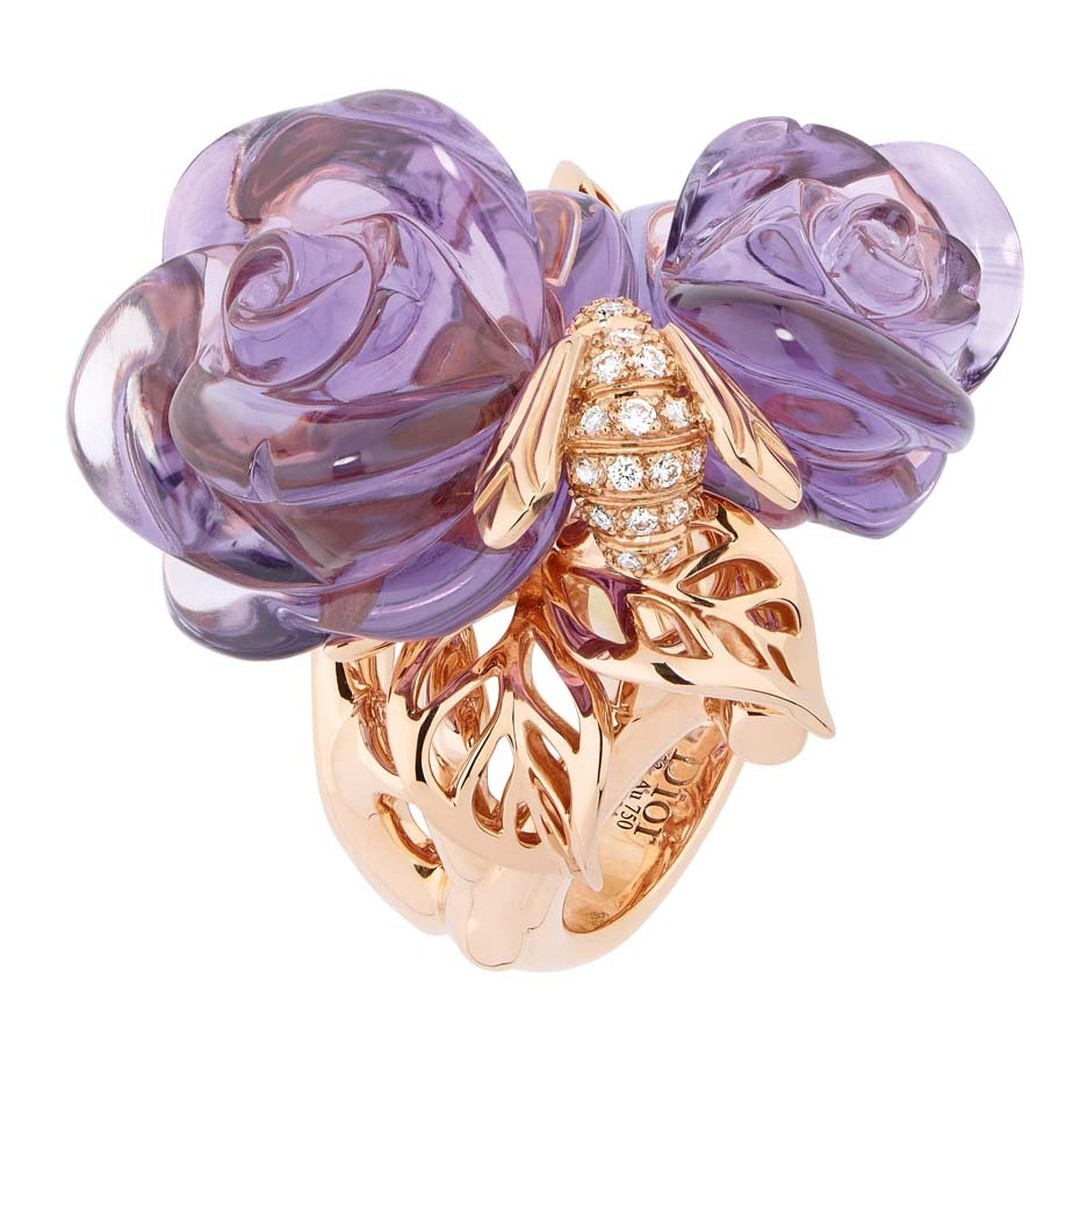 Bee-inspired Pré Catelan ring in pink gold with diamonds and amethyst by Dior Joaillerie.